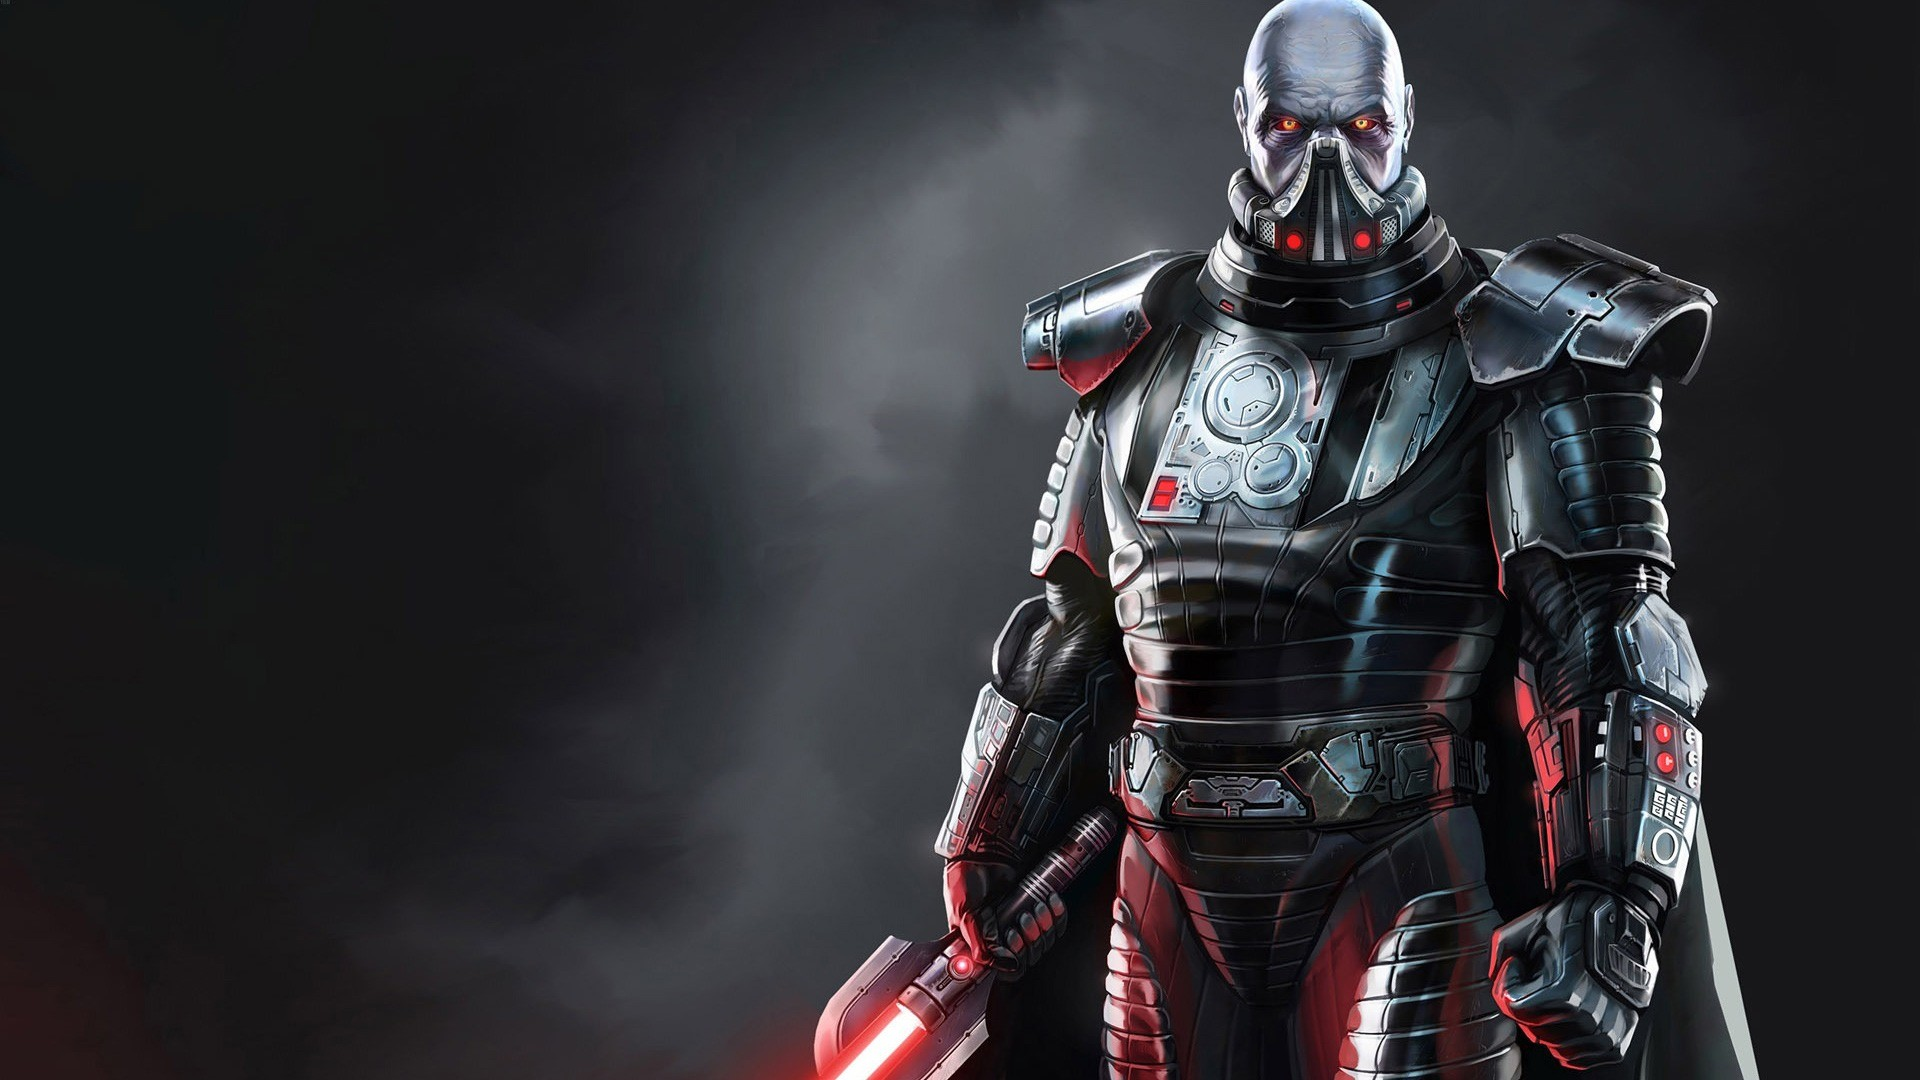 Res: 1920x1080, Star Wars Sith Wallpaper Images On Wallpaper Hd 1920 x 1080 px 623.08 KB  symbol code